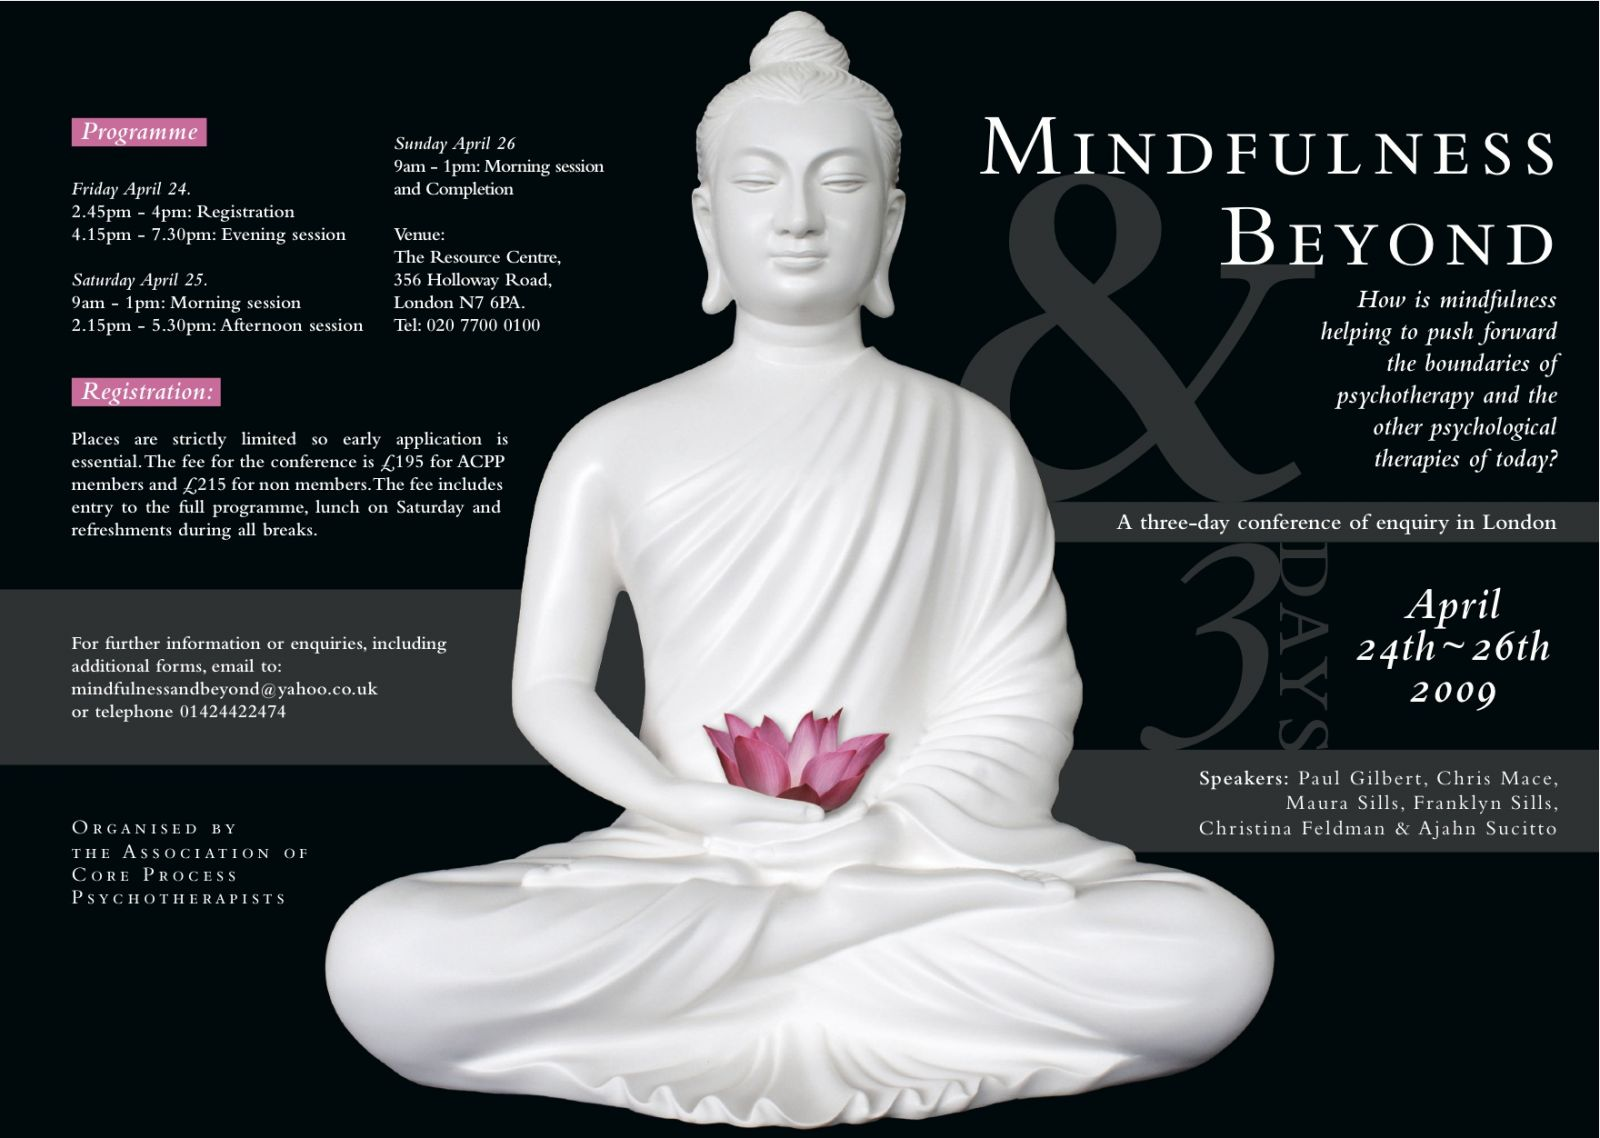 Mindfulness and Beyond